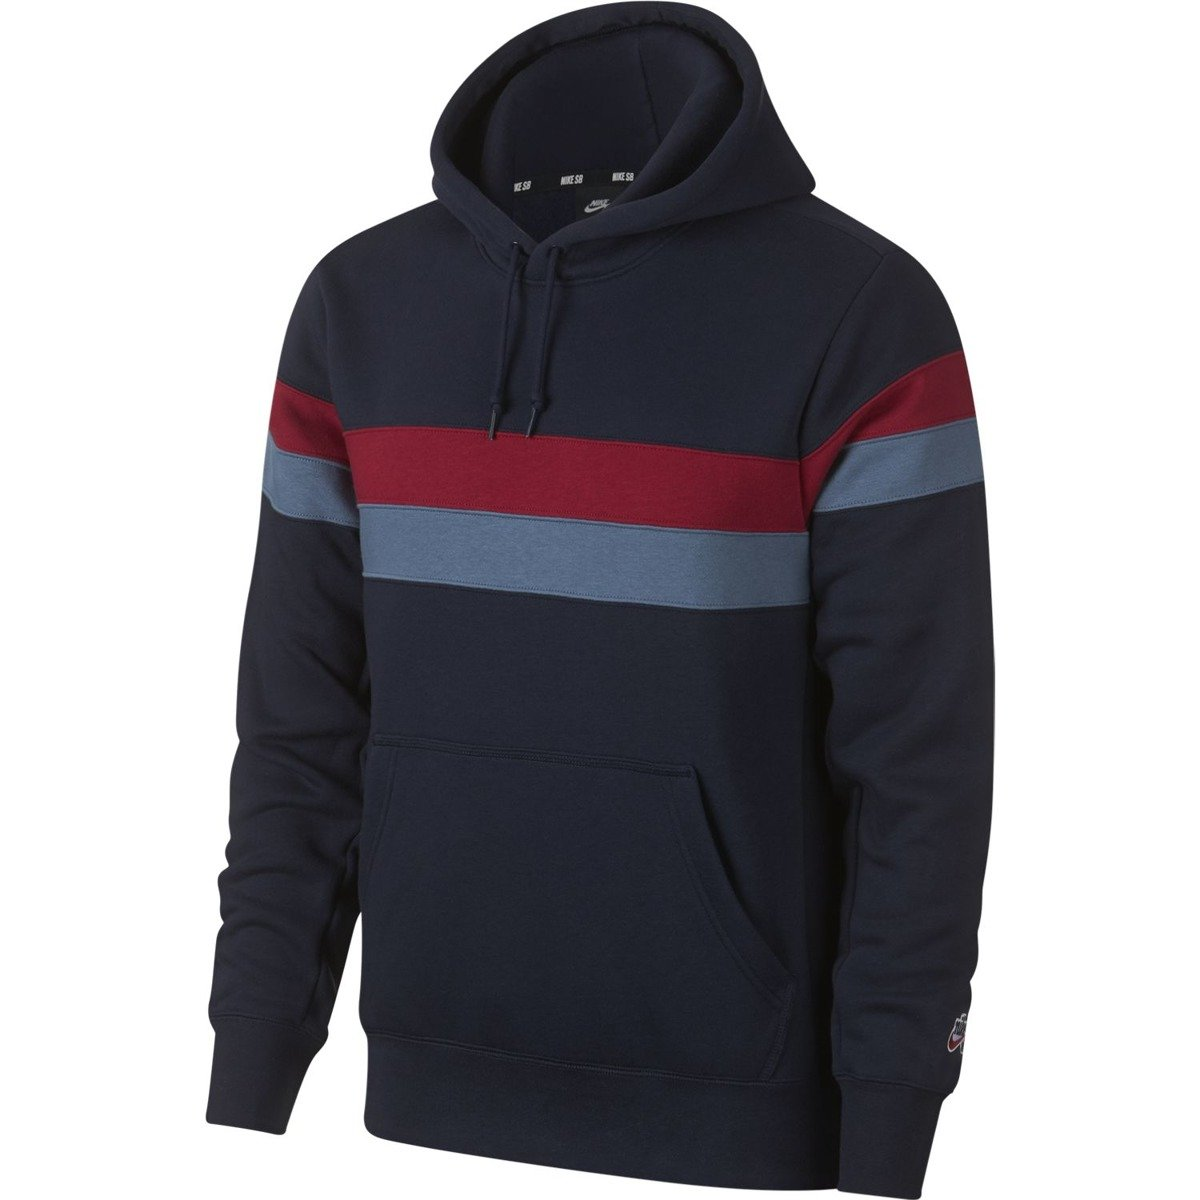 on sale 6593c b9c7f Nike sb Hoodie Icon Stripes Obsidian team Crimson team Crimson blue    Brands   Nike SB Clothes   Bluzy   Hoods   Skateshop Miniramp.pl